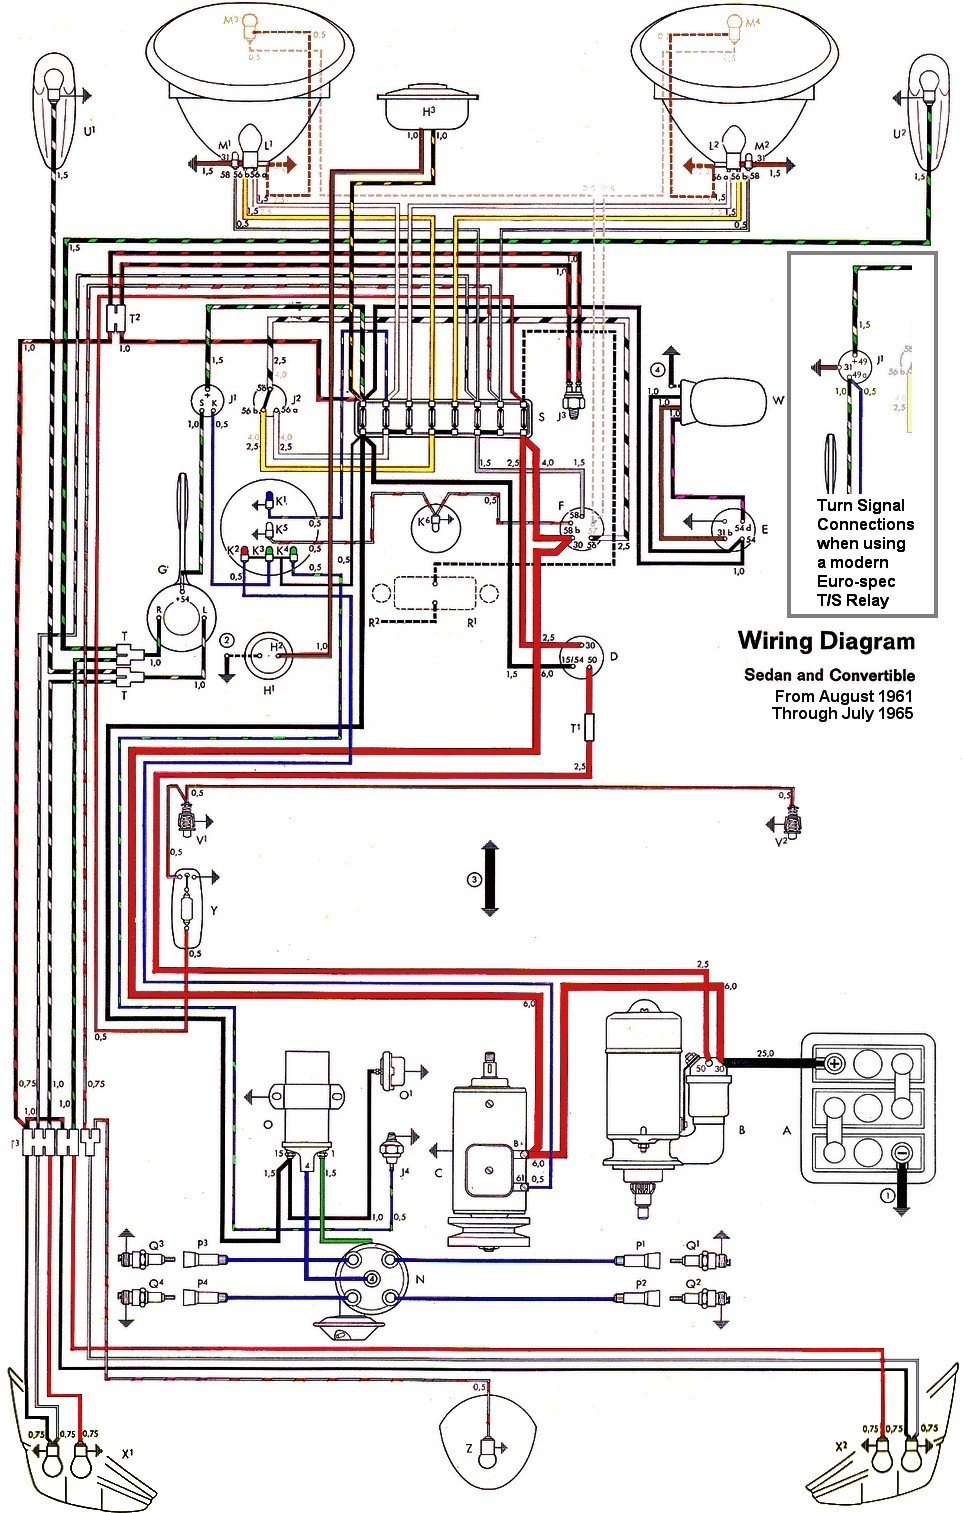 Thesamba Com Type 1 Wiring Diagrams 2000 VW Beetle Wiring Diagram 65 Vw  Wiring Diagram